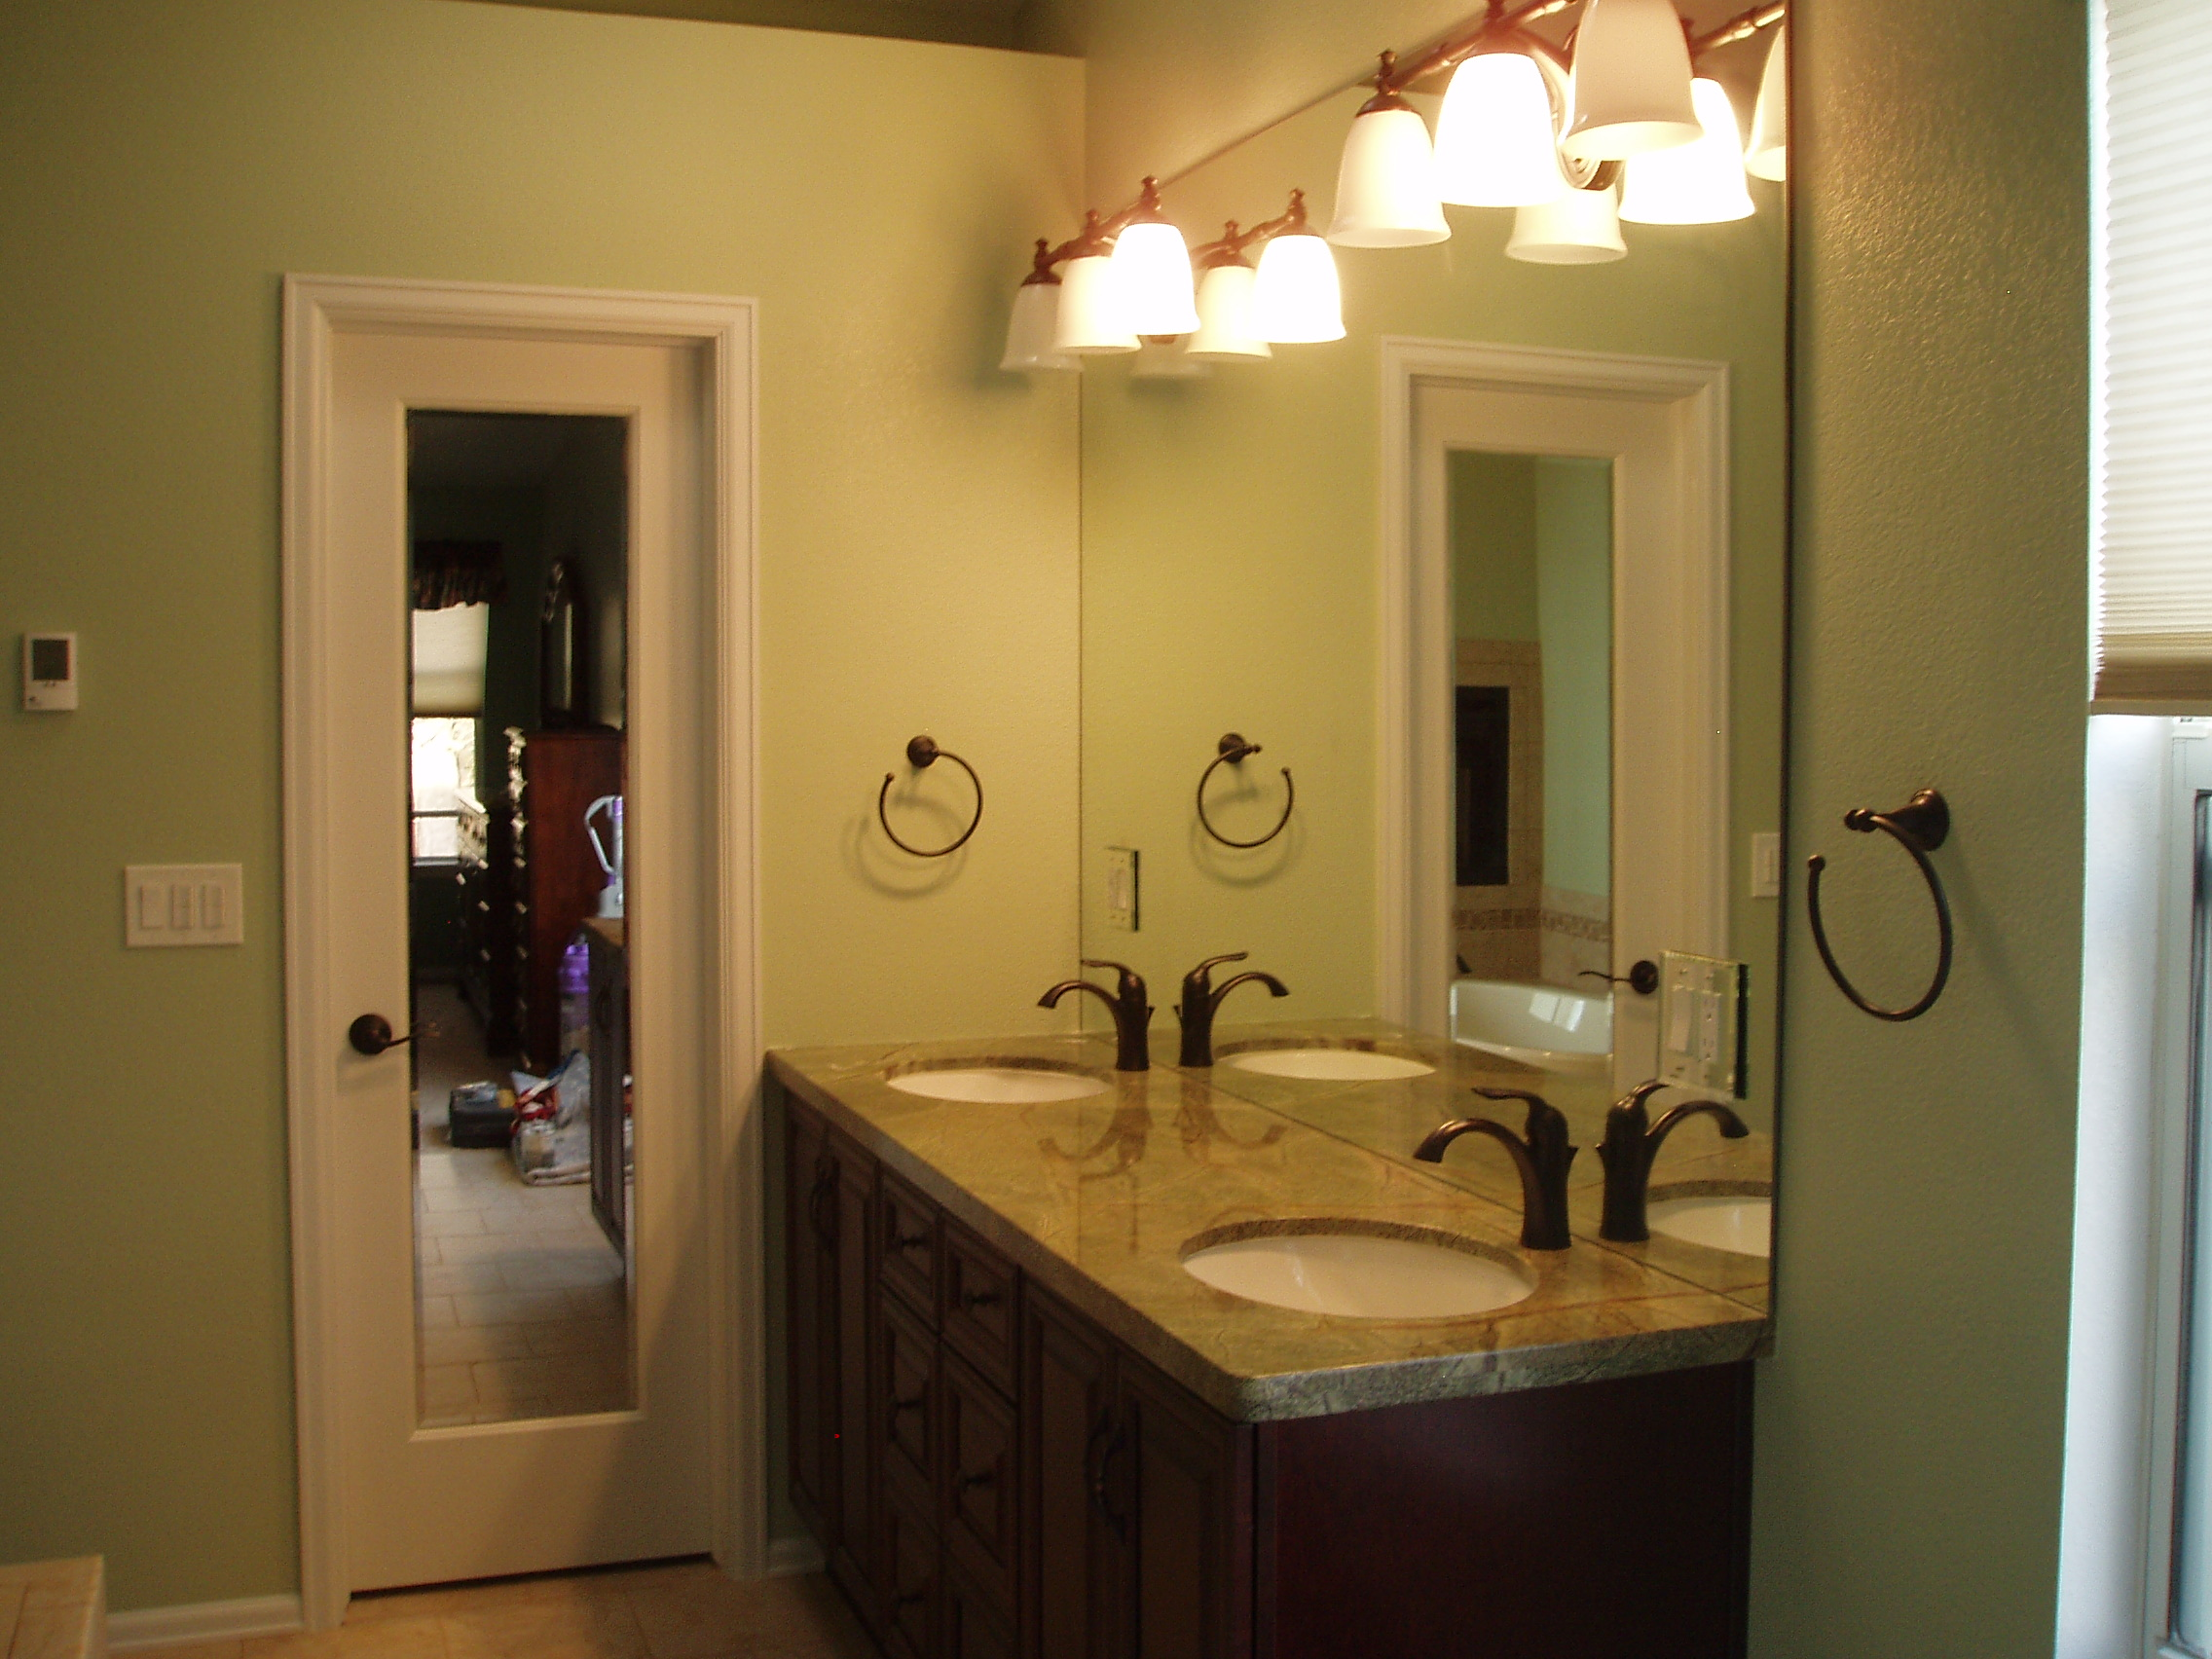 Bathrooms renovations affordable views for Affordable bathroom renovations